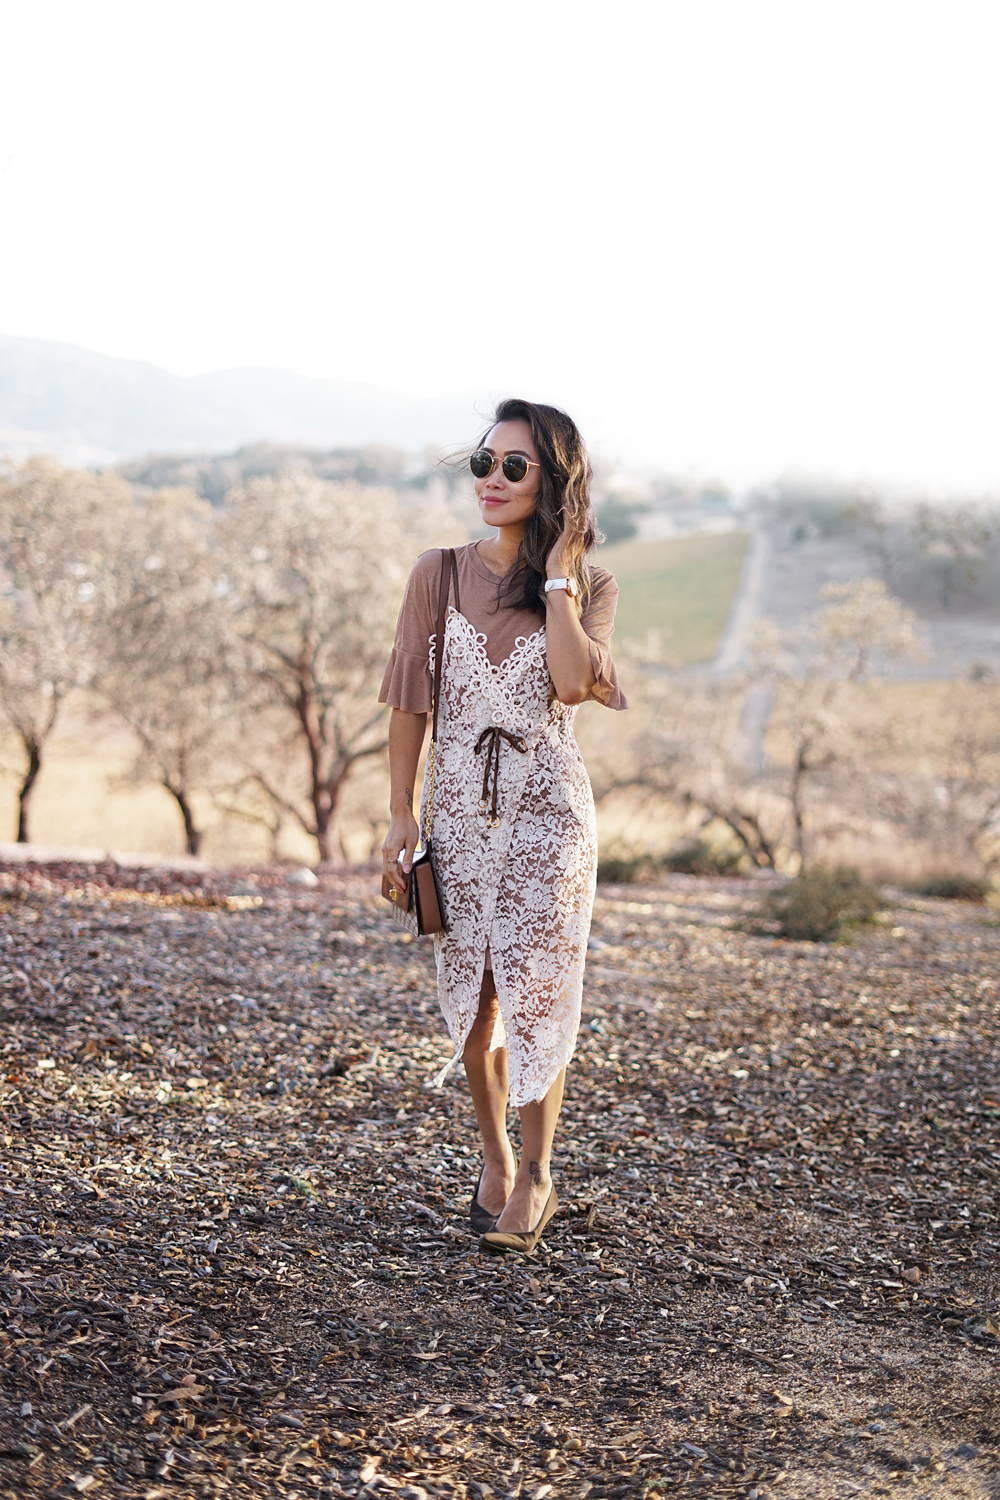 13napa-winecountry-fall-travel-ootd